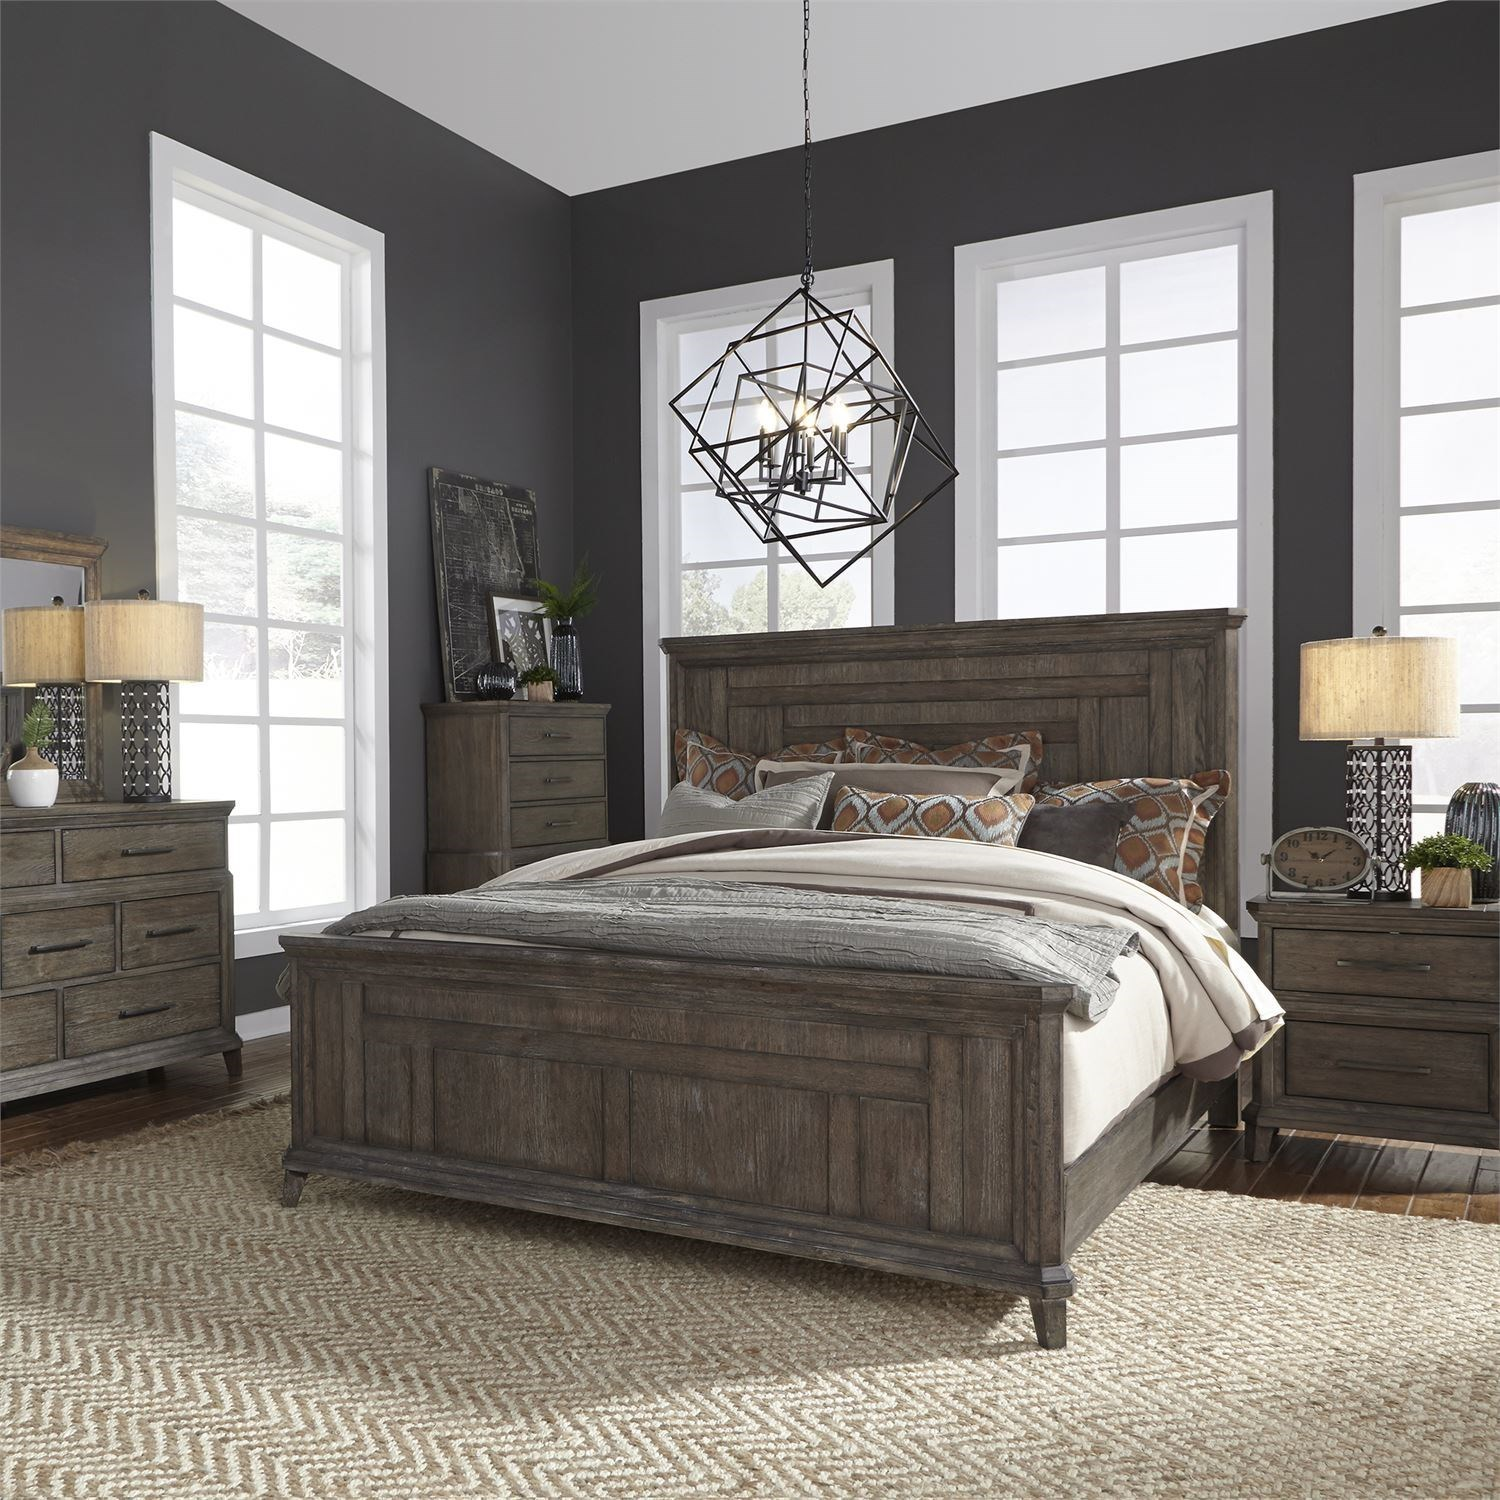 Artisan Prairie King Bedroom Group by Liberty Furniture at Catalog Outlet